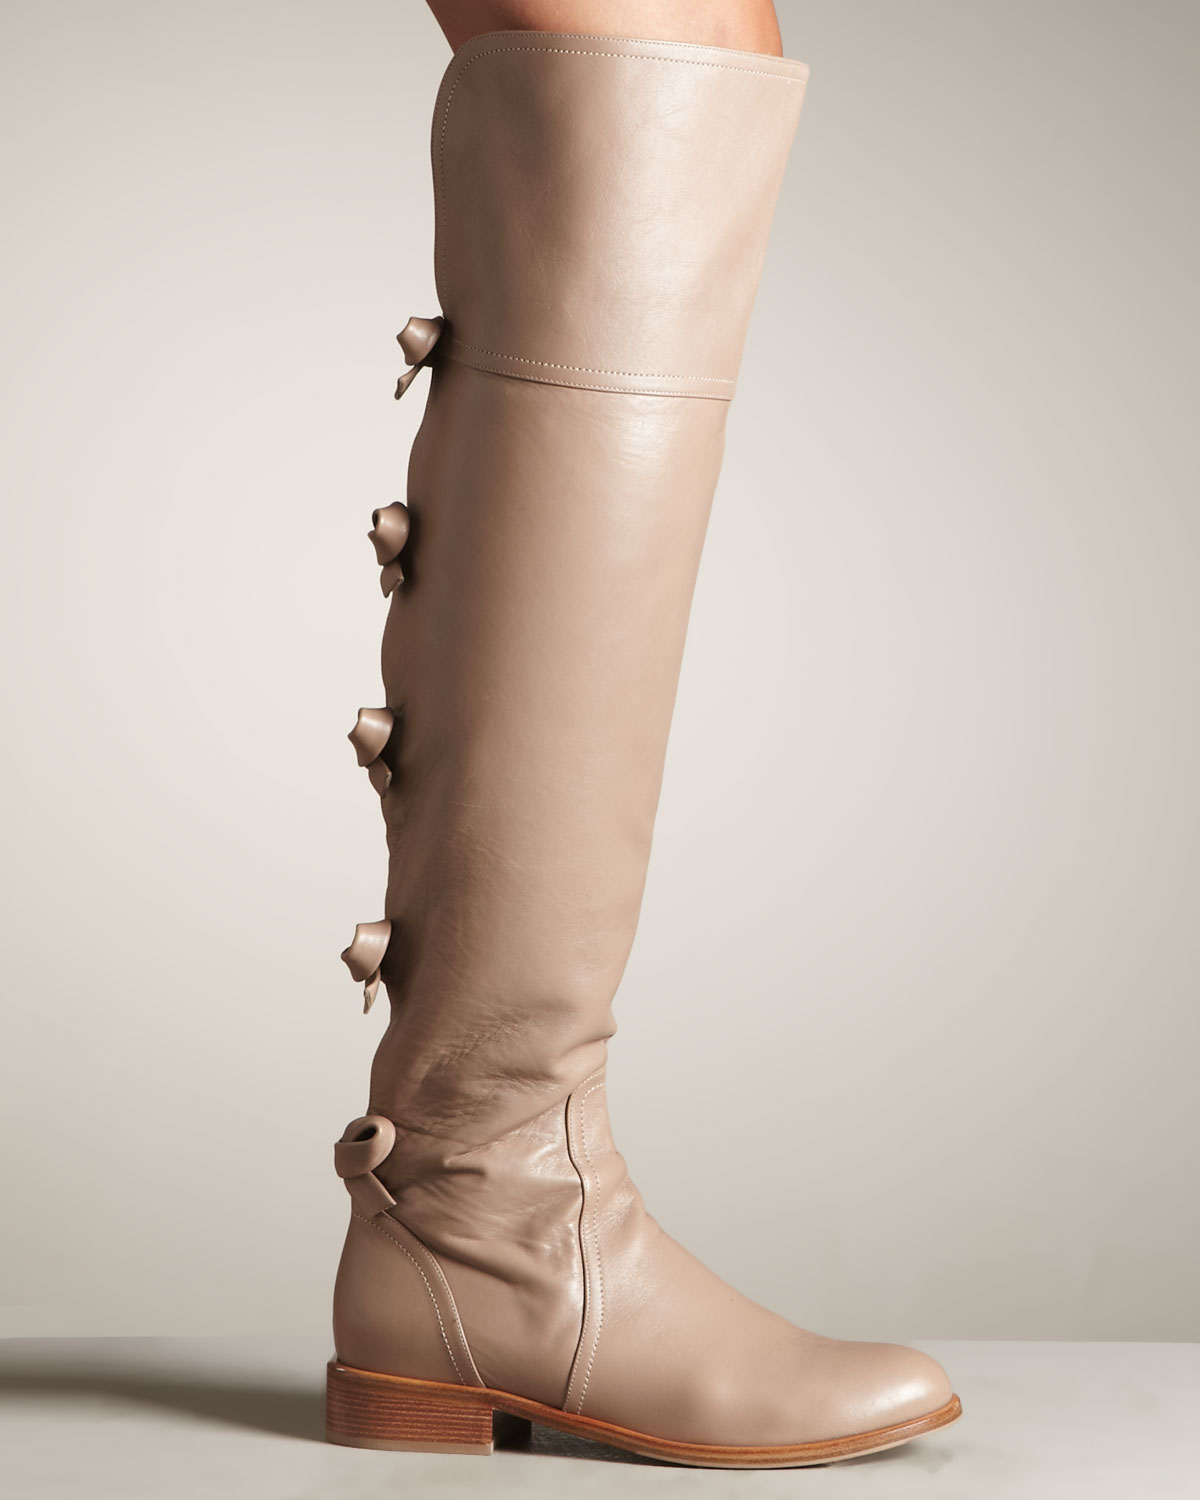 Valentino Bow-back Over-the-knee Riding Boot in Natural | Lyst